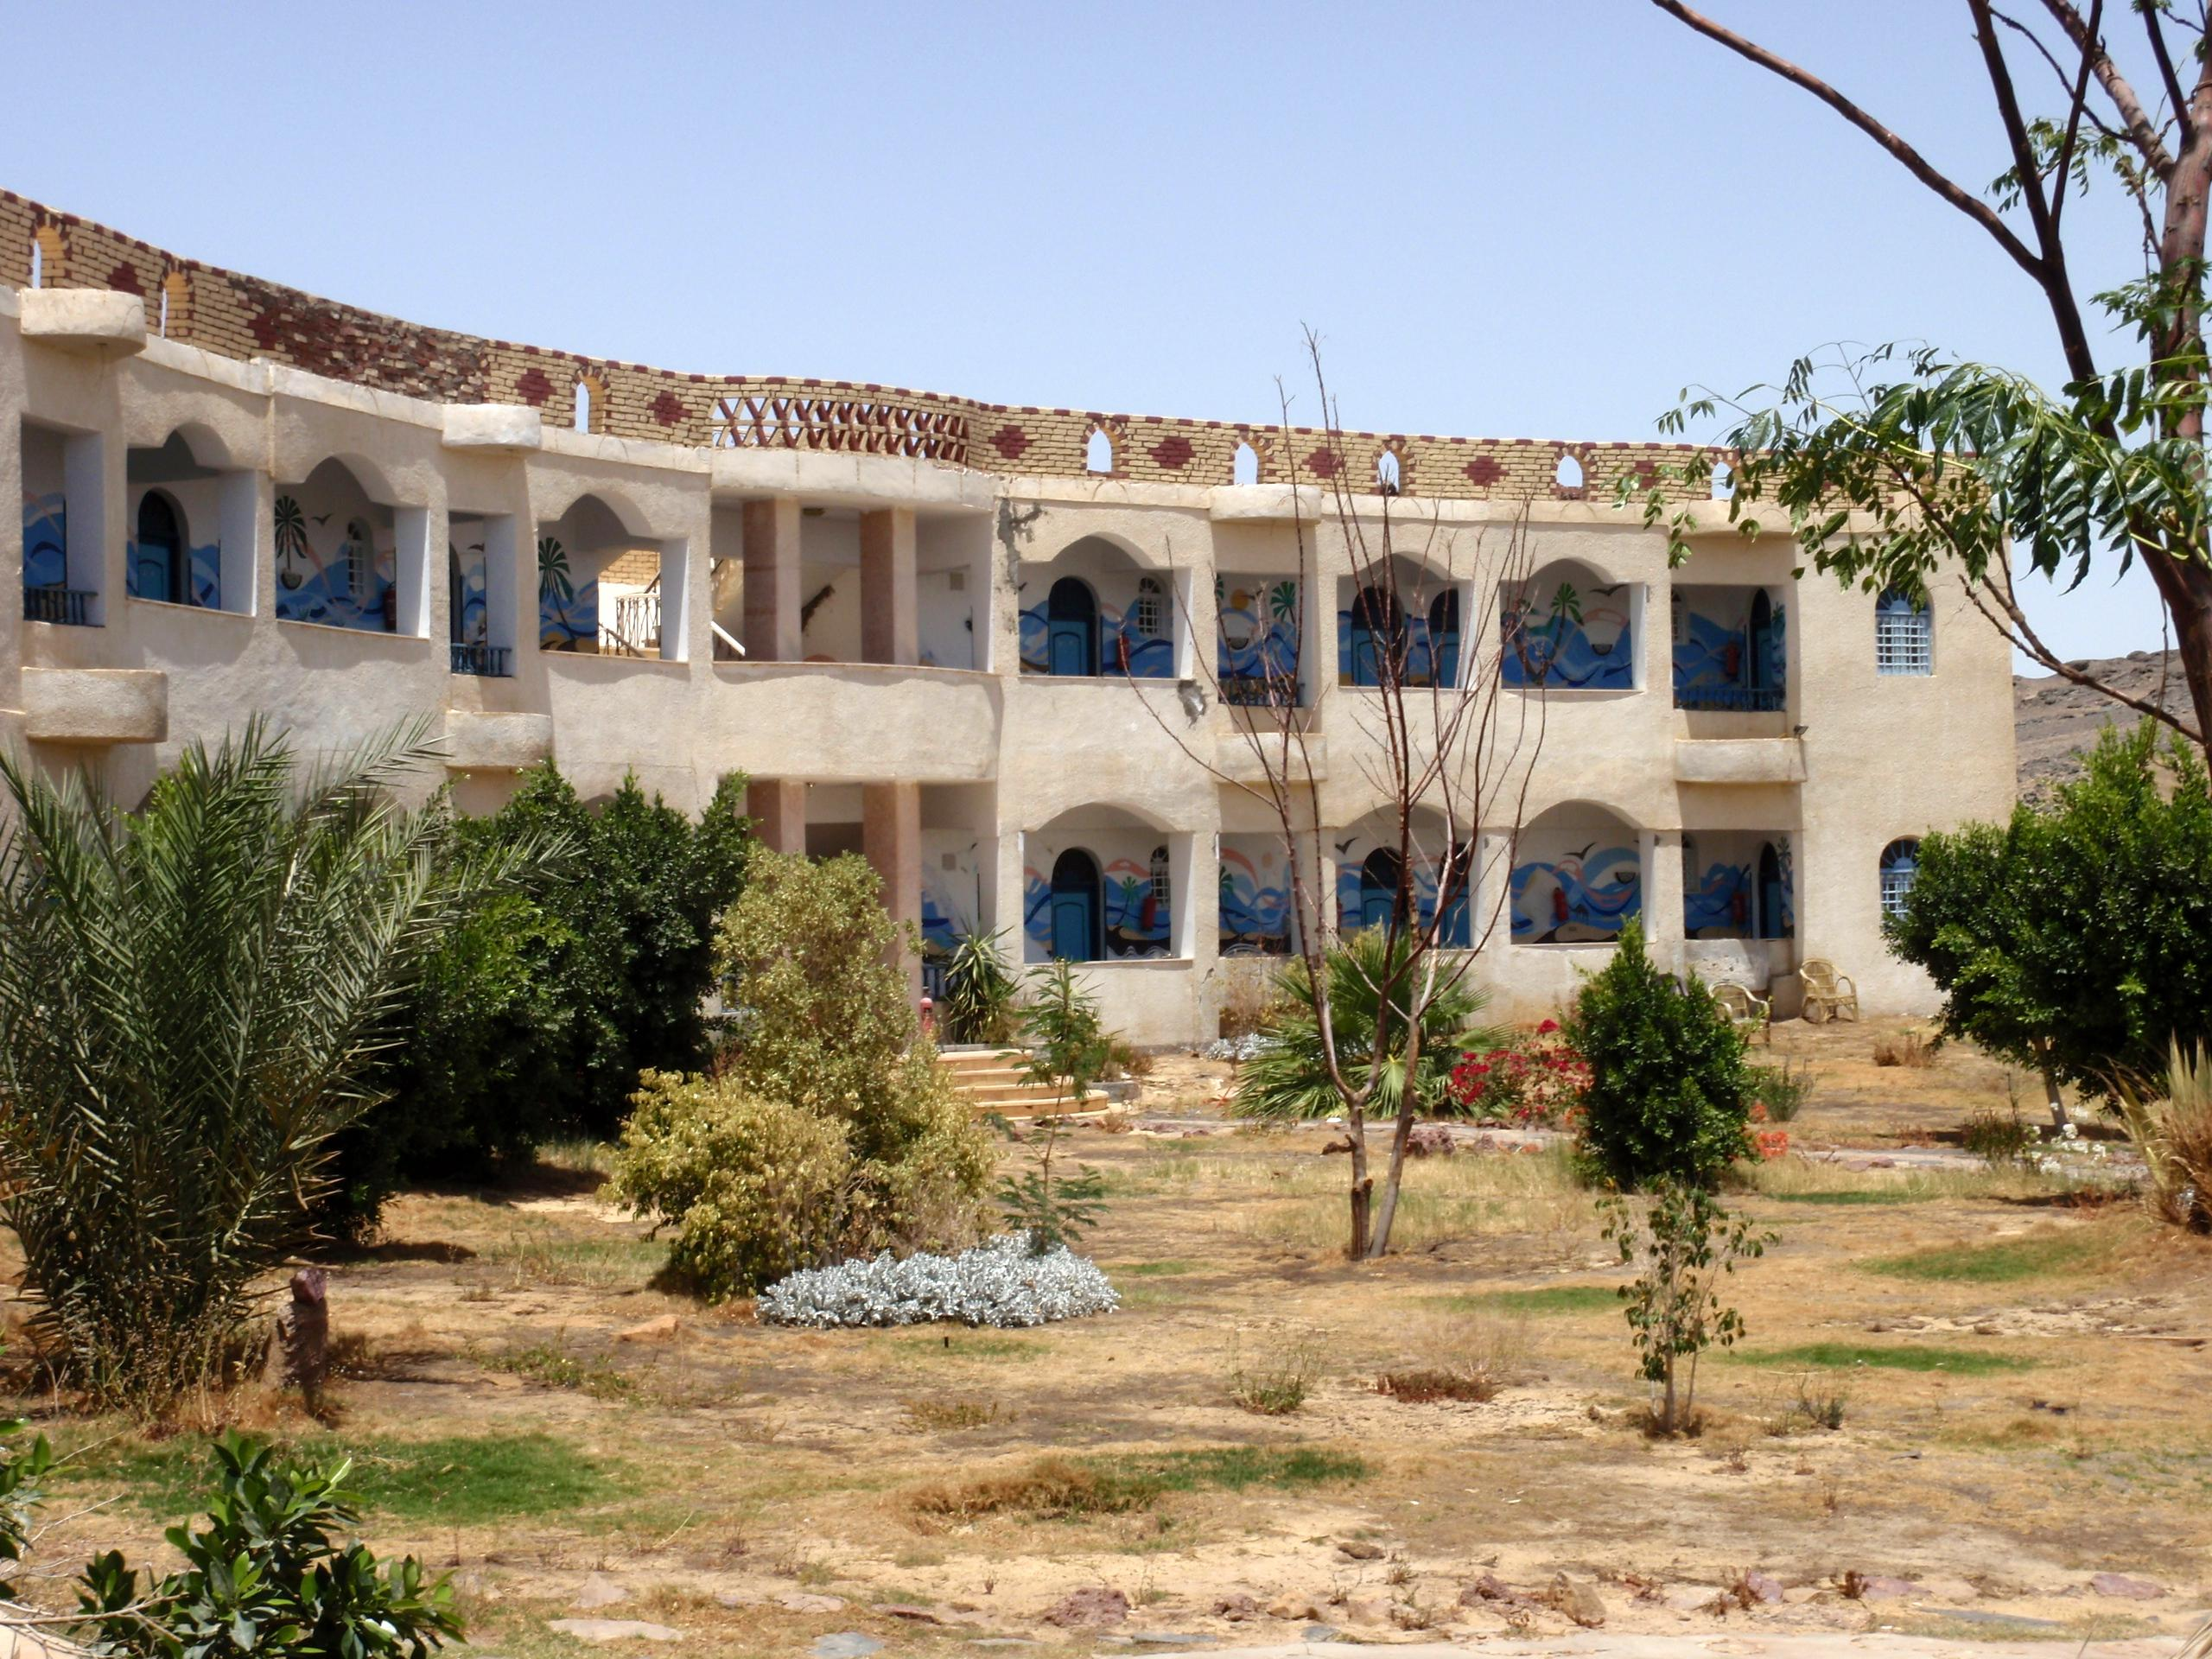 Oasis Panorama Hotel